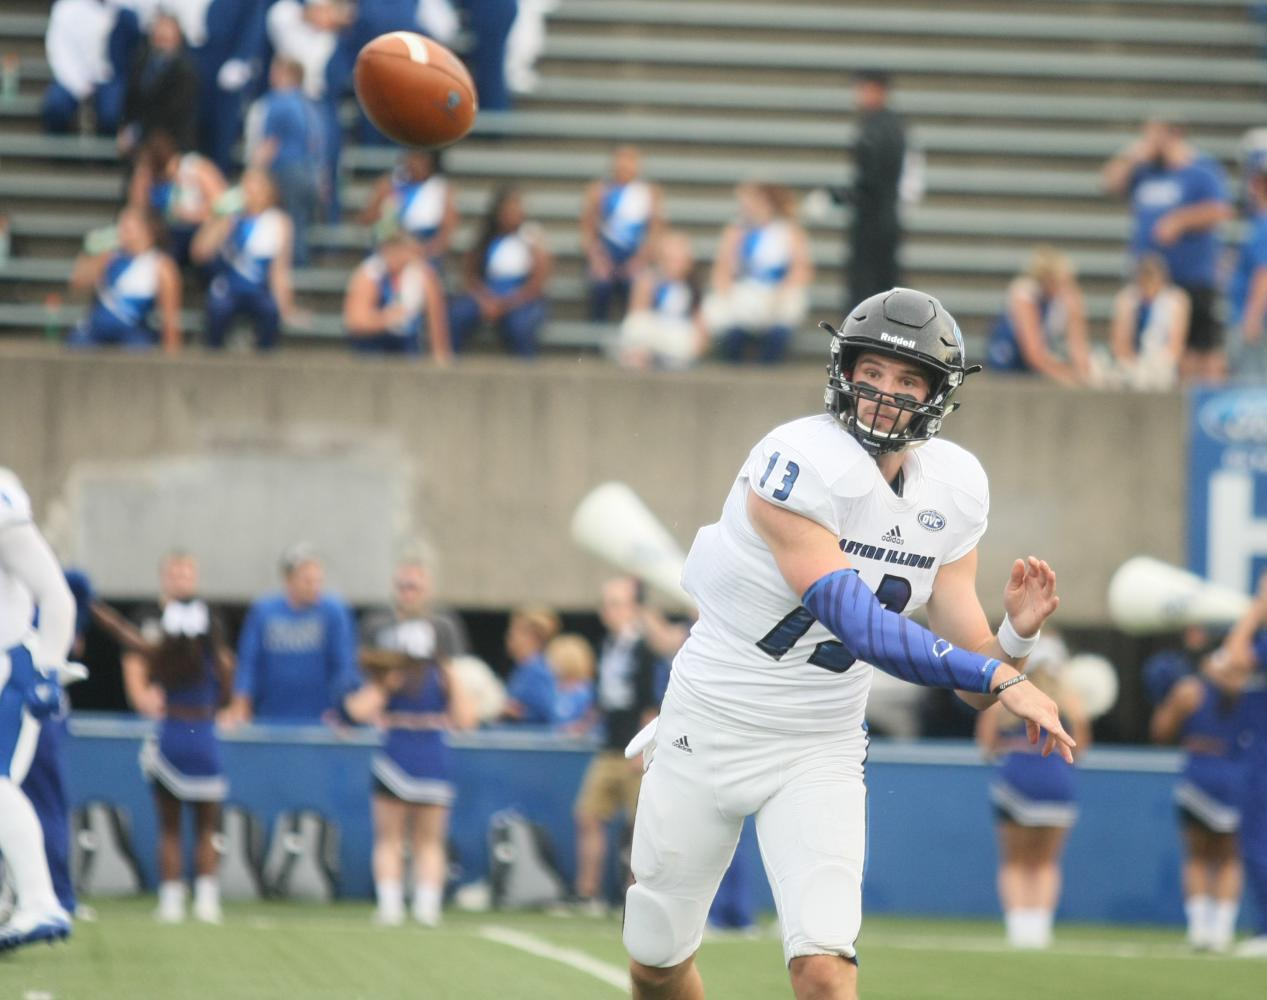 Eastern quarterback Mitch Kimble fires a pass August 31 at Memorial Stadium in Terre Haute, Ind. Kimble threw a game-winning touchdown pass to lead the Panthers over Indiana State 22-20.